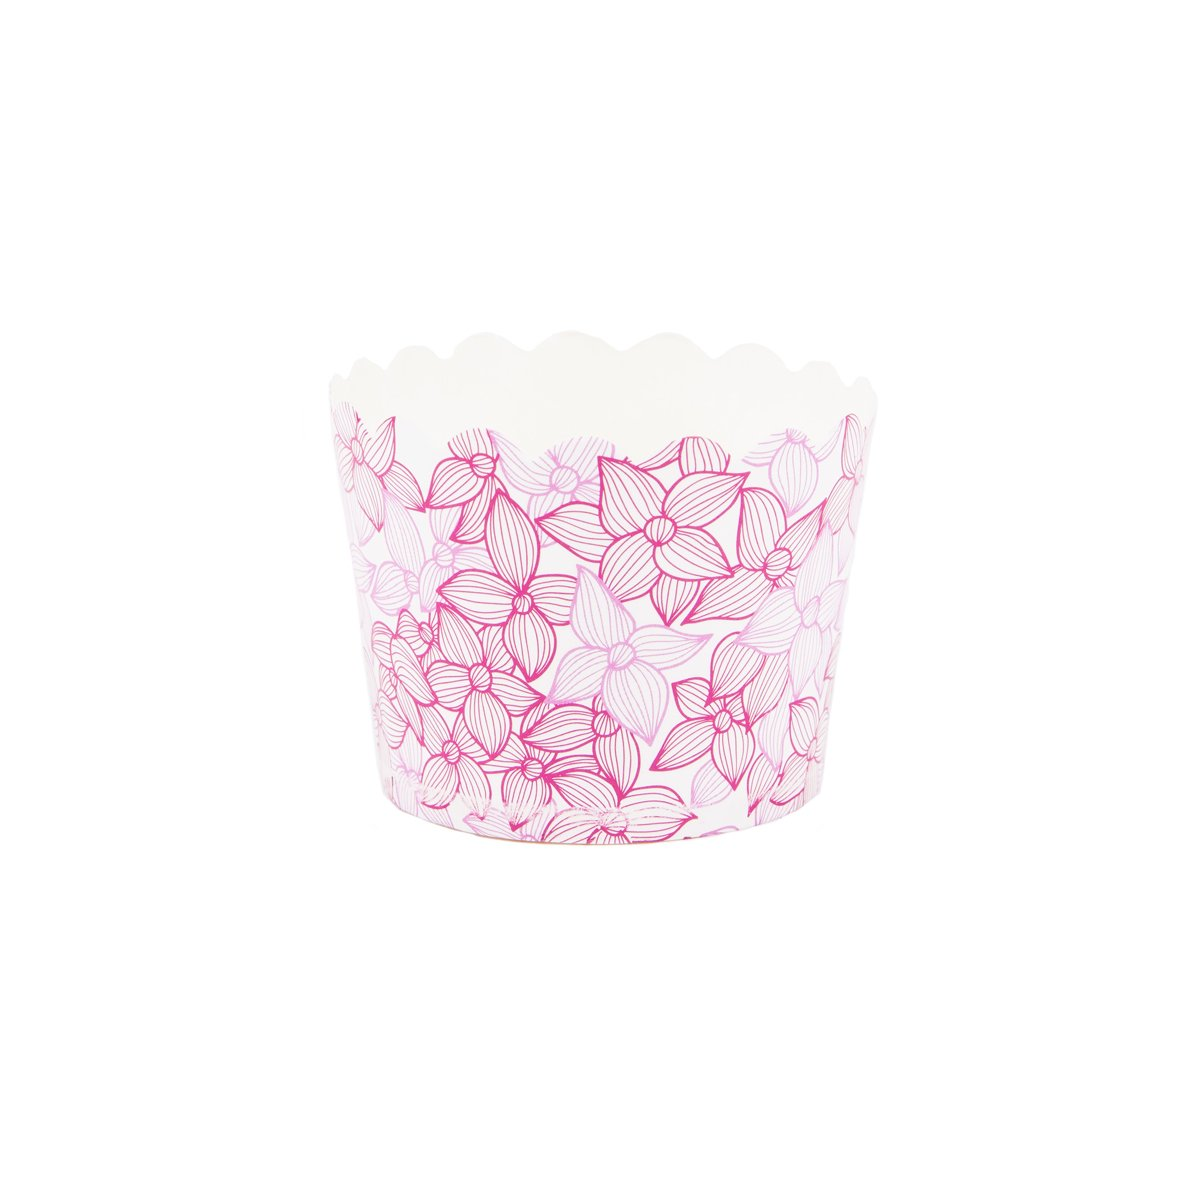 Simply Baked Small Paper Baking Cup, Pink Floral, 550 Pack, Disposable & Oven-Safe